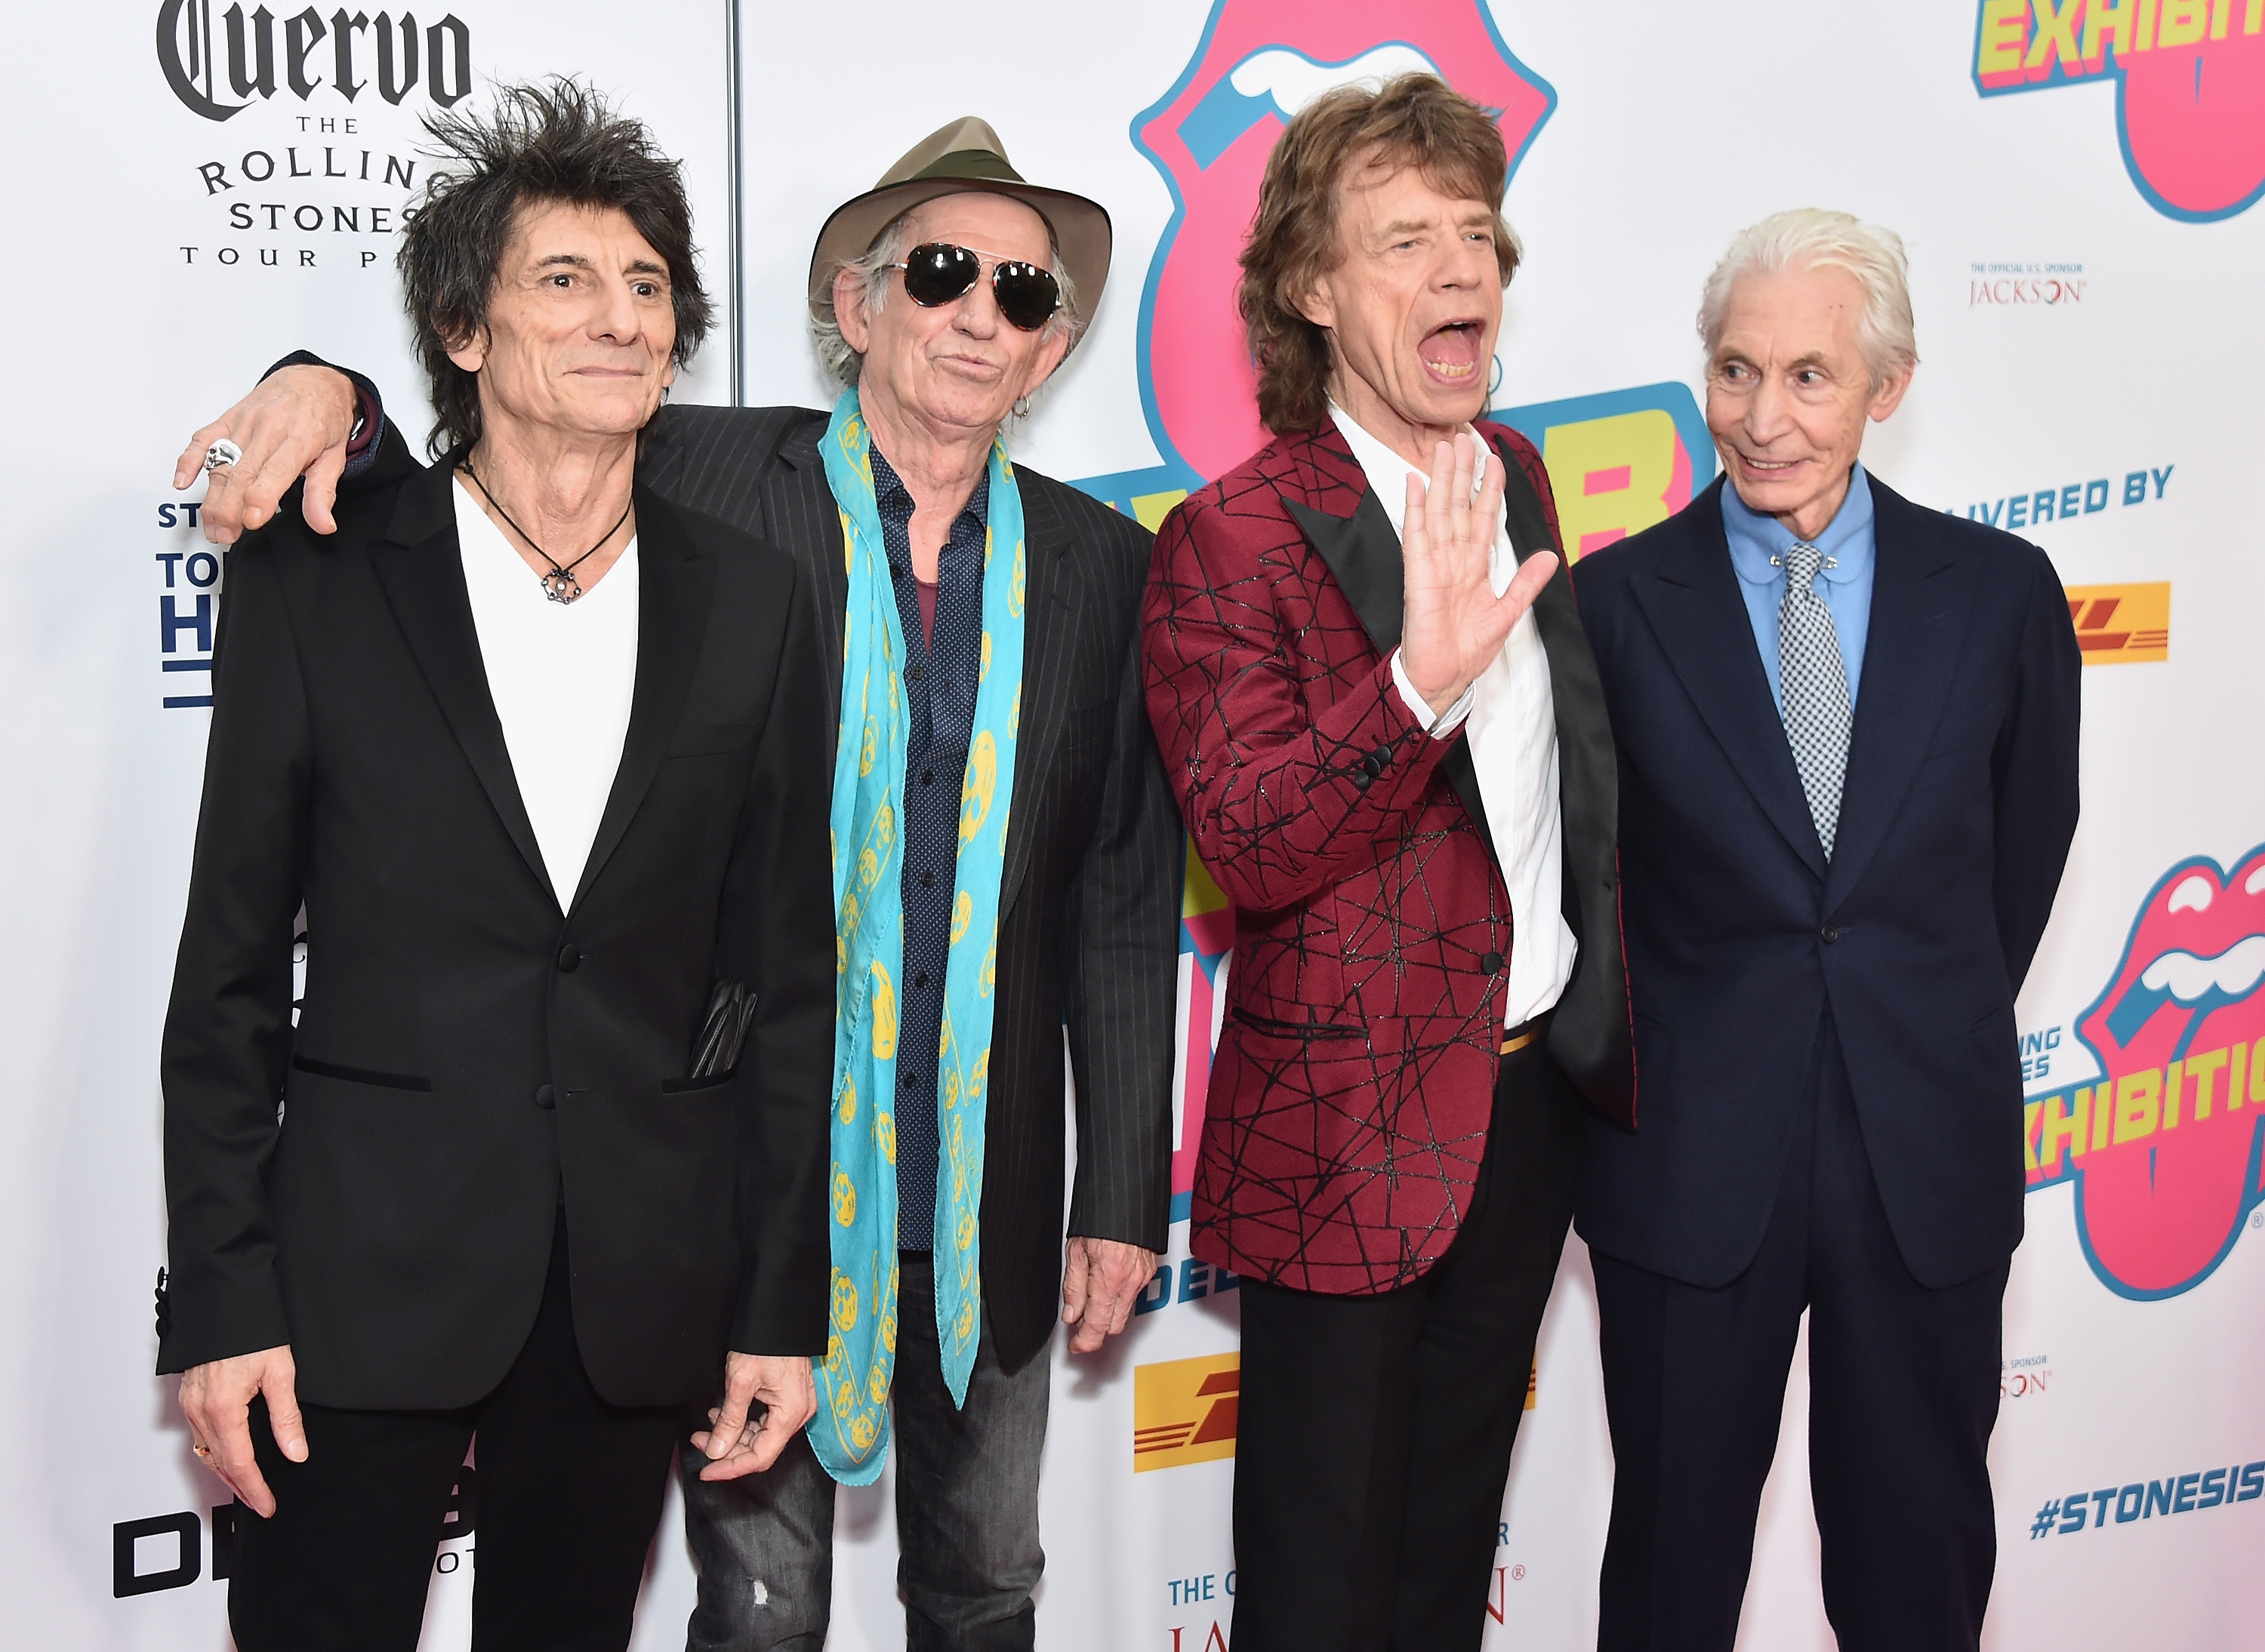 (L-R) Ronnie Wood, Keith Richards, Mick Jagger, and Charlie Watts of The Rolling Stones attend The Rolling Stones celebrate the North American debut of Exhibitionism at Industria in the West Village on November 15, 2016 in New York City. (Photo by Michael Loccisano/Getty Images)